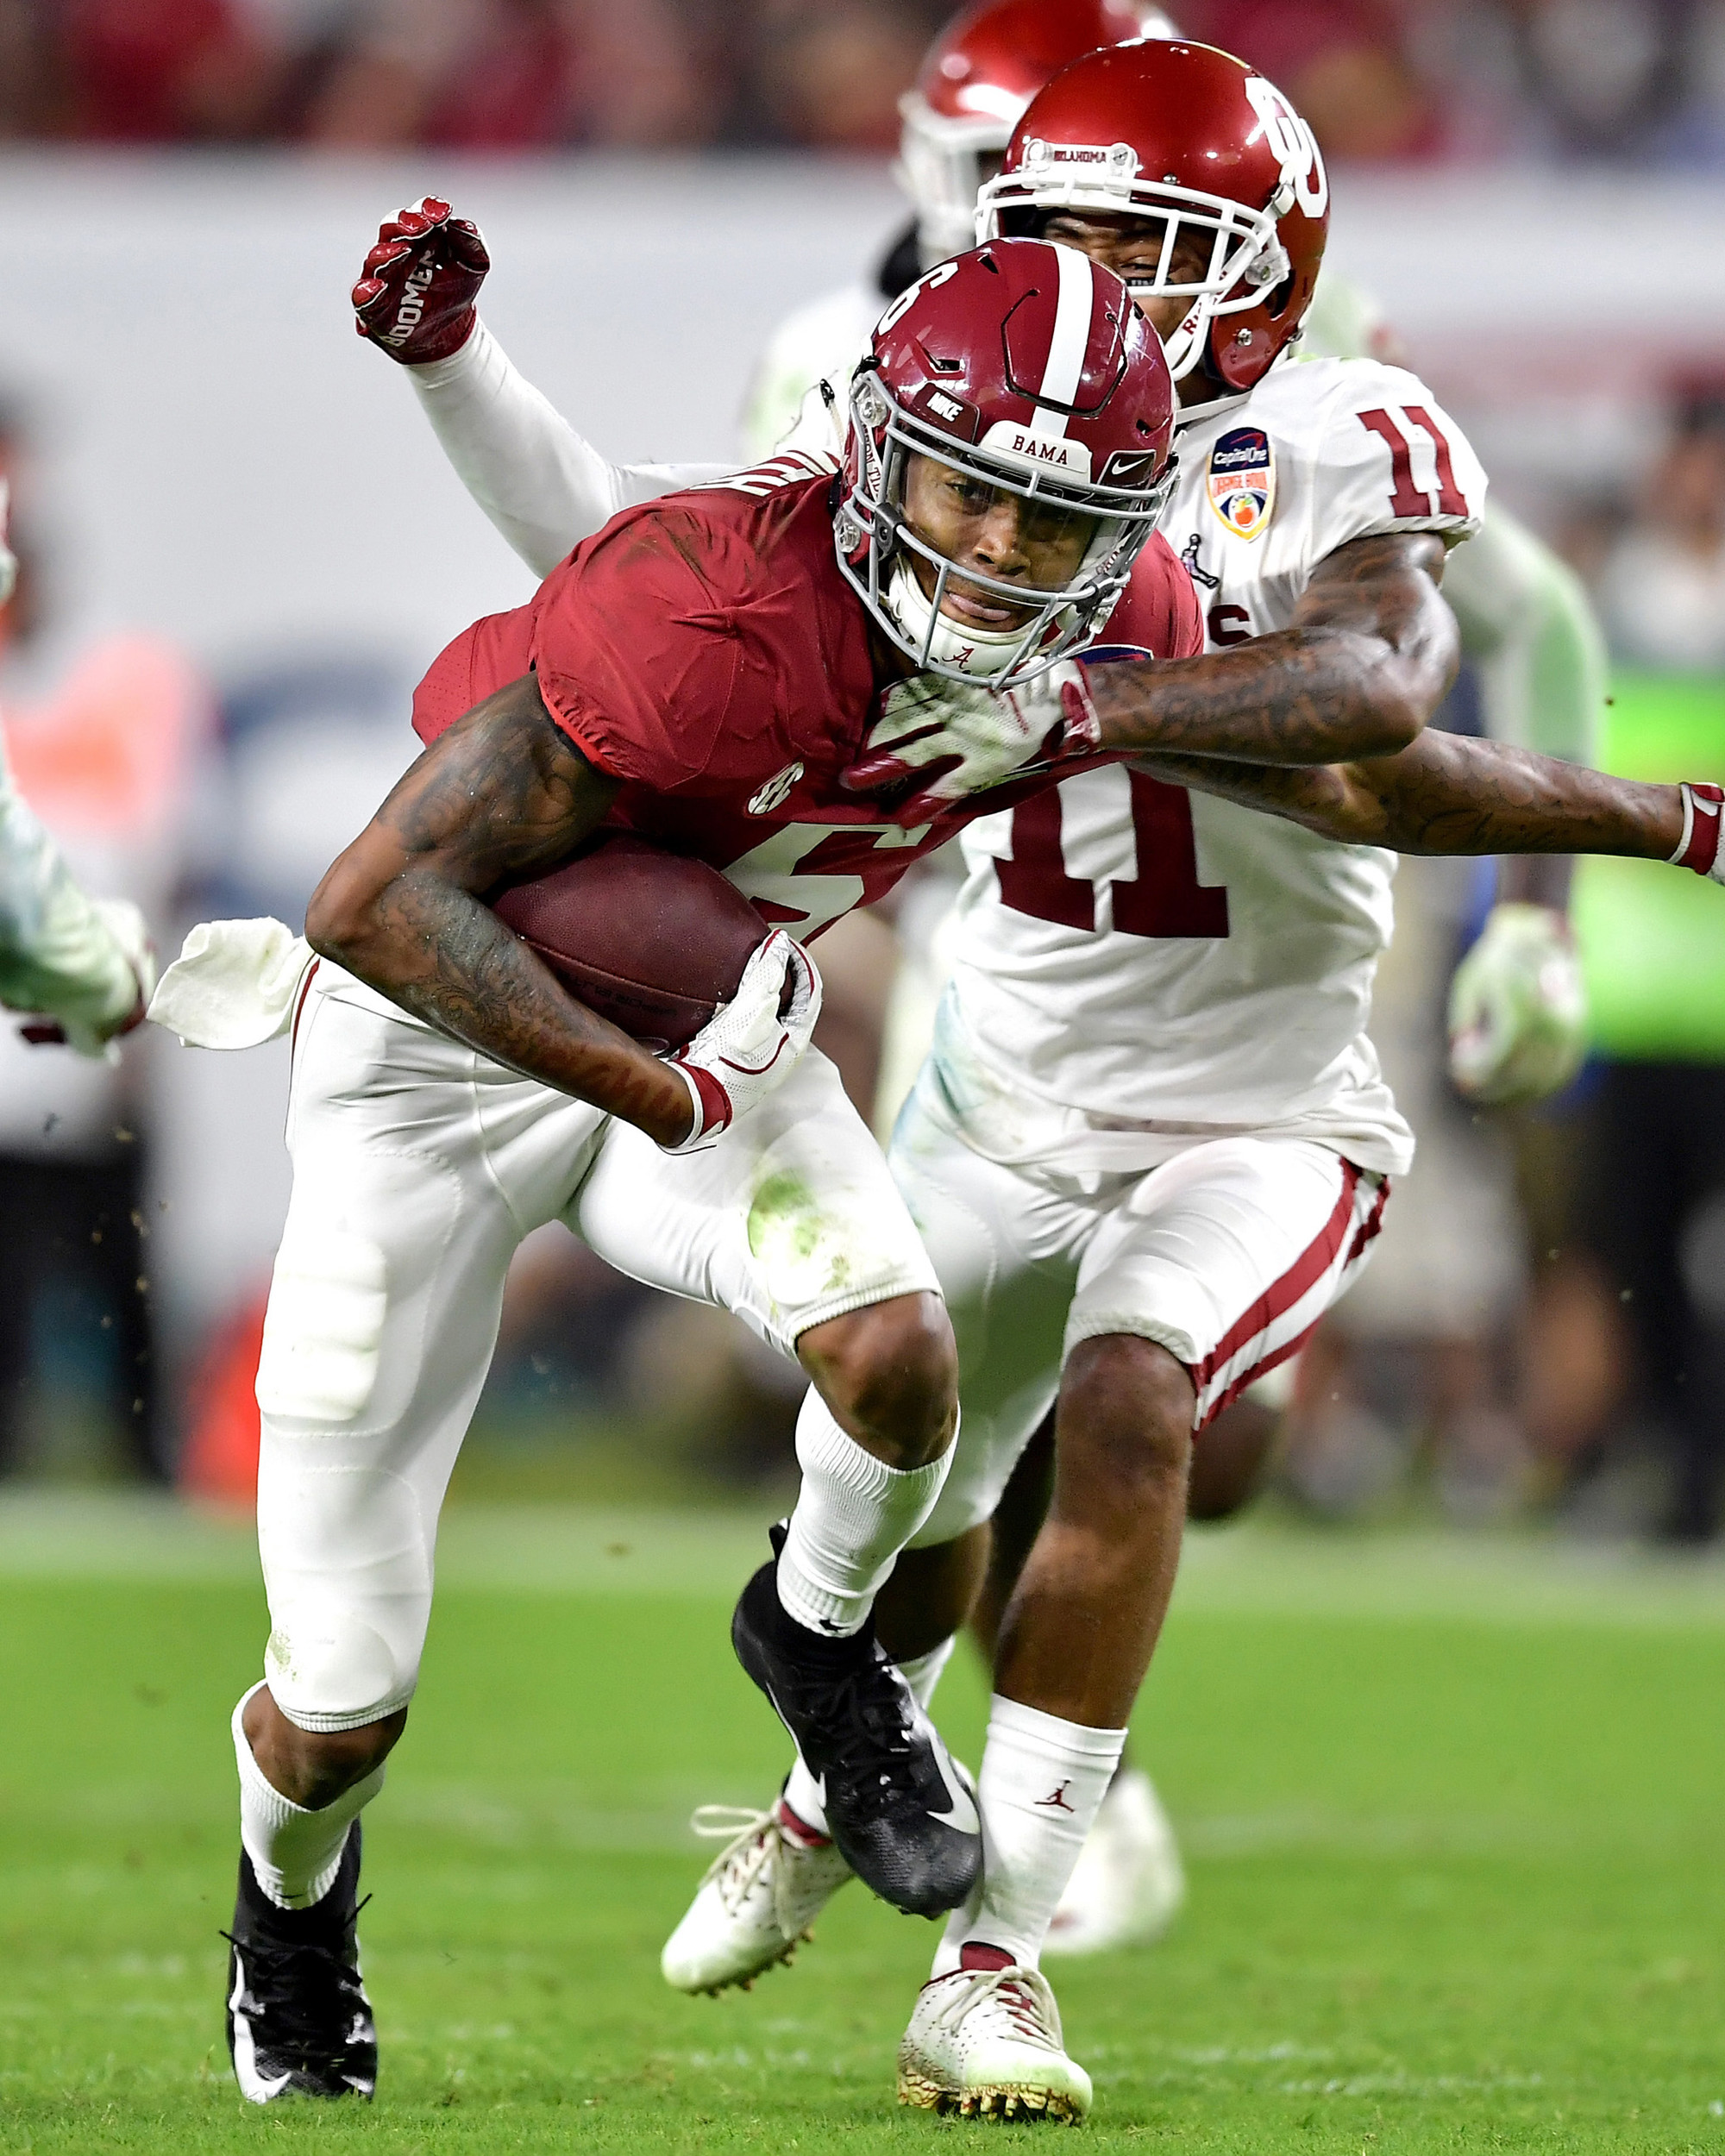 Alabama Crimson Tide wide receiver DeVonta Smith (6) looks to add yards after the reception in the second half of the Capital One Orange Bowl, featuring Alabama and the Oklahoma Sooners, at Hard Rock Stadium in Miami Gardens, Fla., Saturday, Dec. 29, 2018. Alabama wins 45-34. (Photo by Lee Walls)